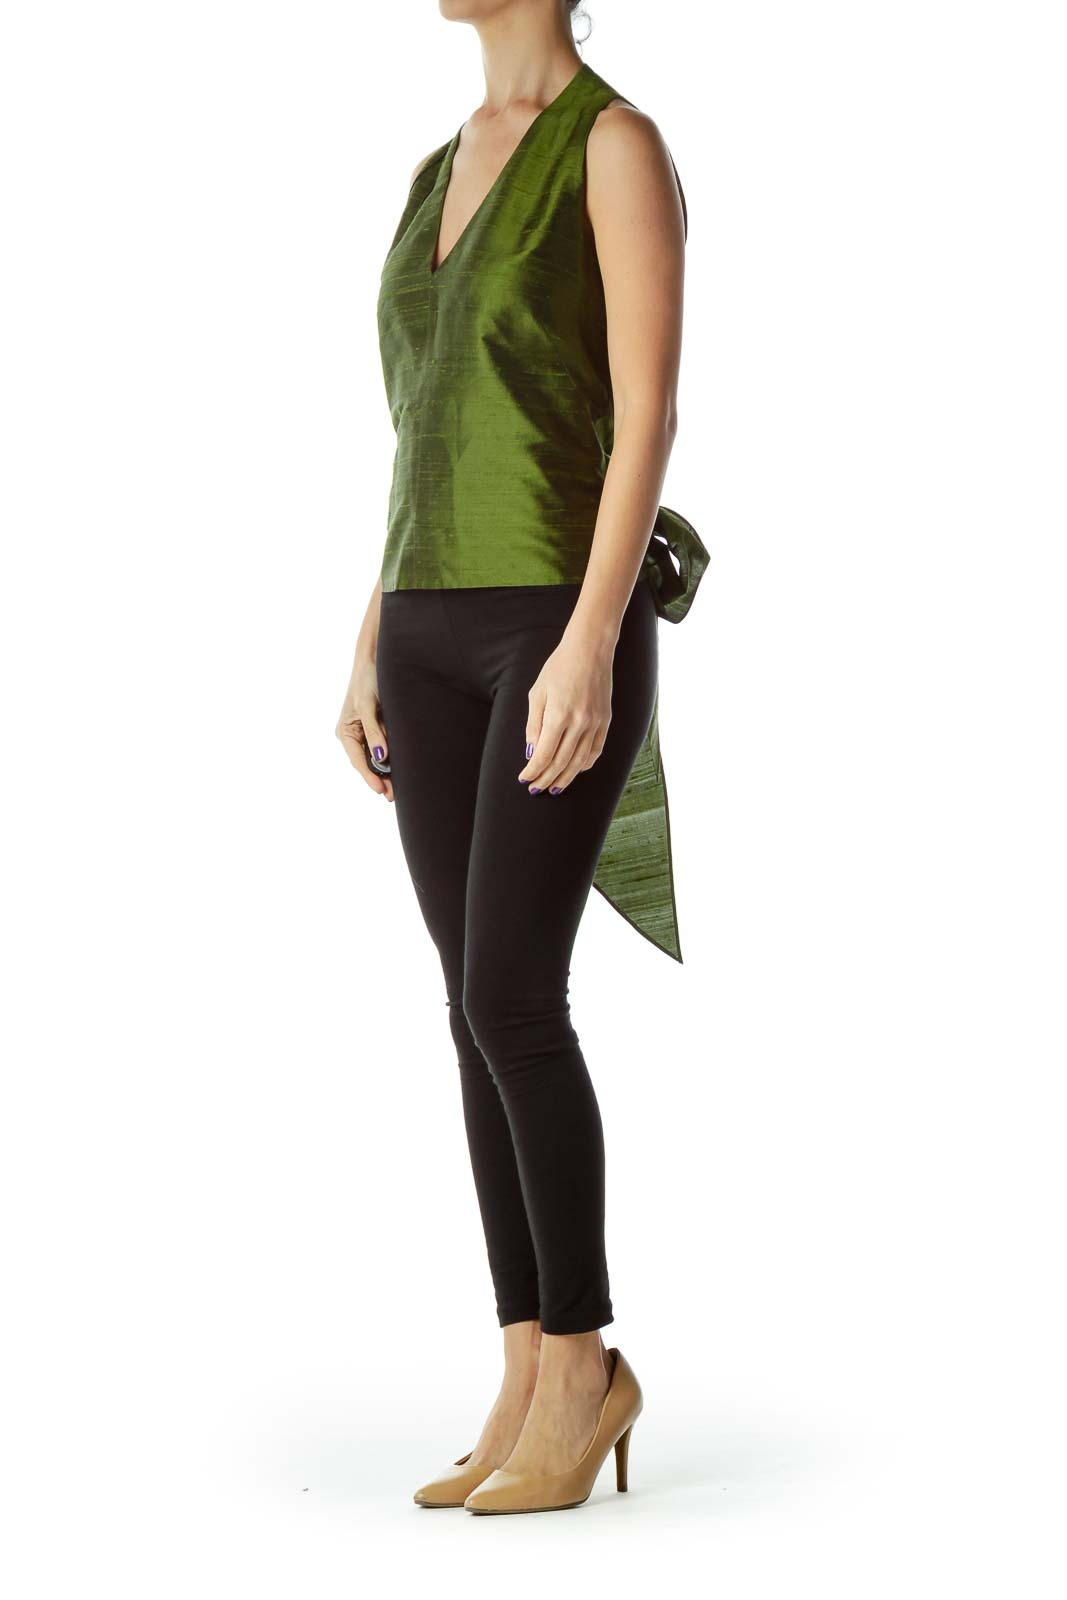 0b46117eb8efa Wristwatch by Versace. Wristwatch by Versace. Next. Lafayette 148 New York. Green  Silk V-Neck Bow Blouse